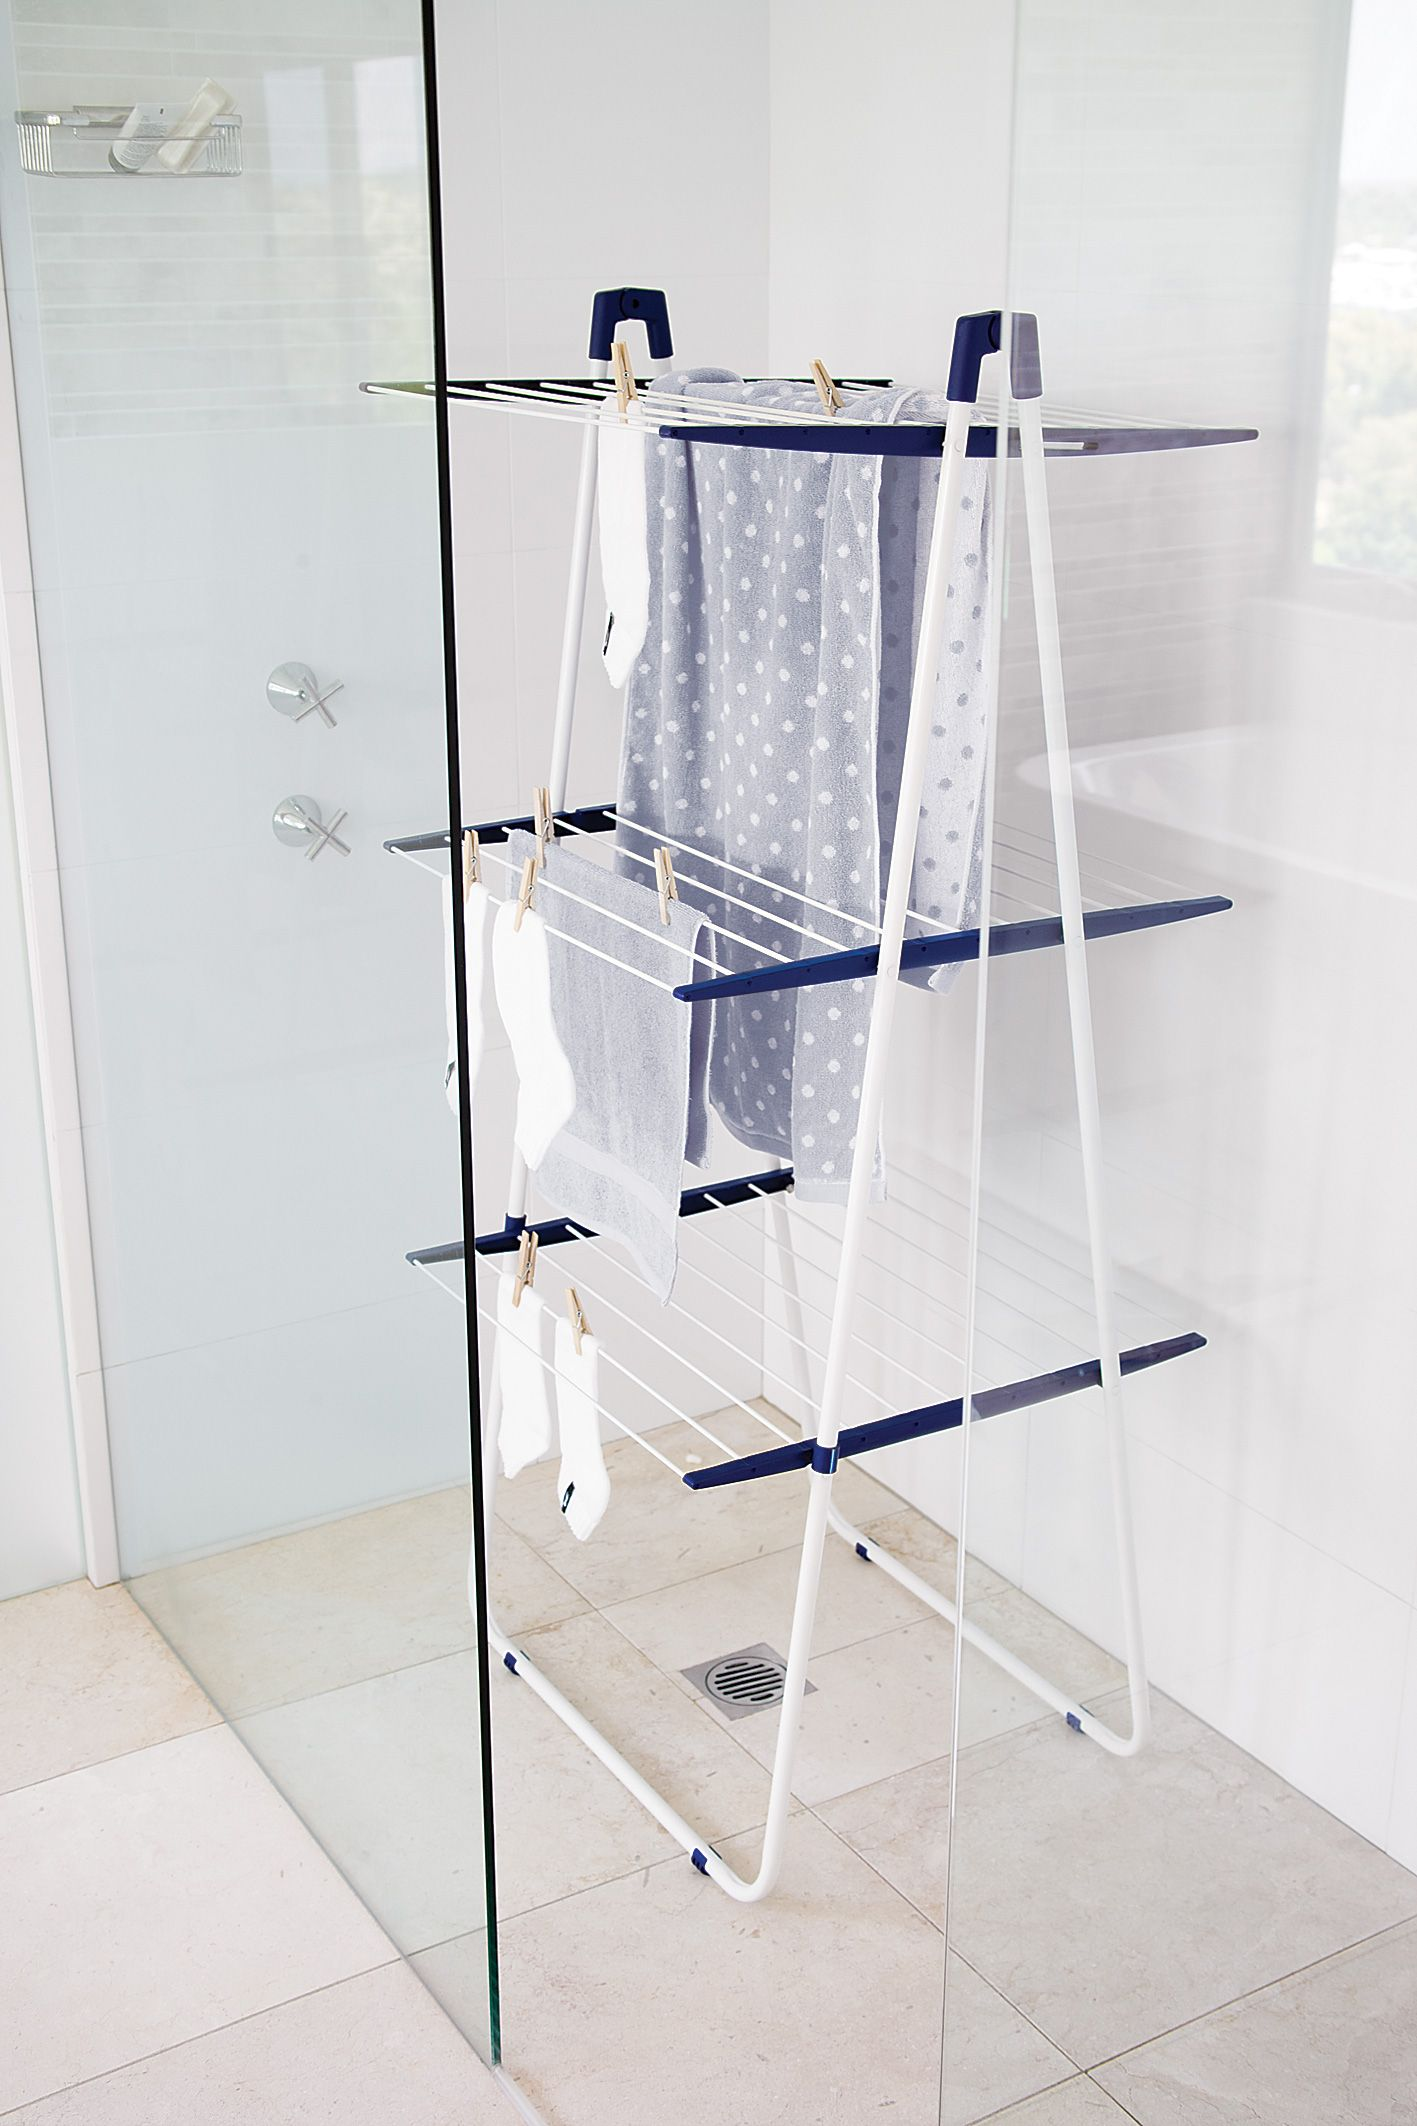 tight on space invest in the leifheit in shower drying tower 169 available at howards. Black Bedroom Furniture Sets. Home Design Ideas